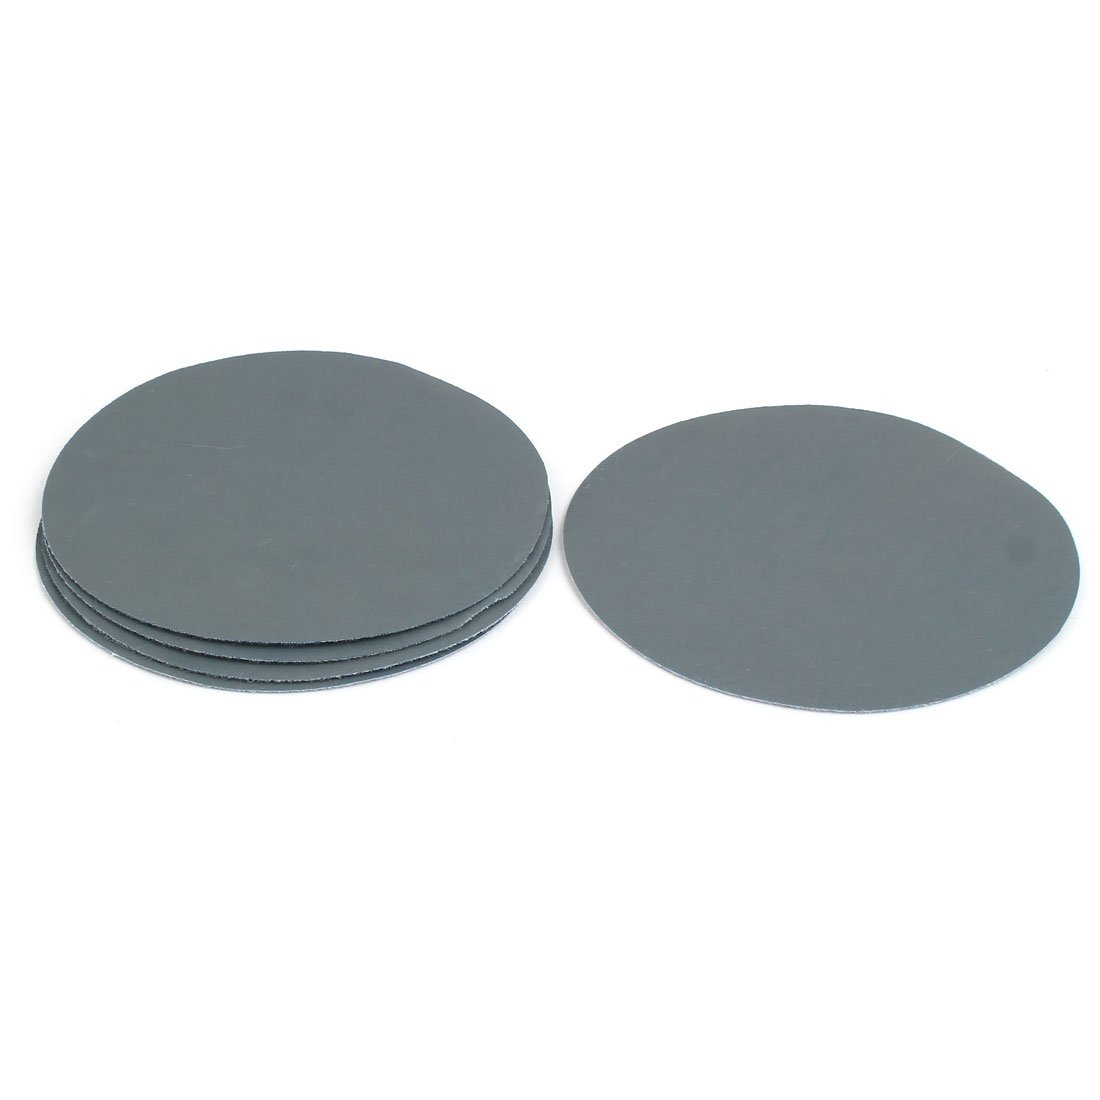 sourcingmap® 3000 Grit 5-inch Diameter Sandpaper Hook Loop Sanding Disc 5 Pcs a17032900ux1046